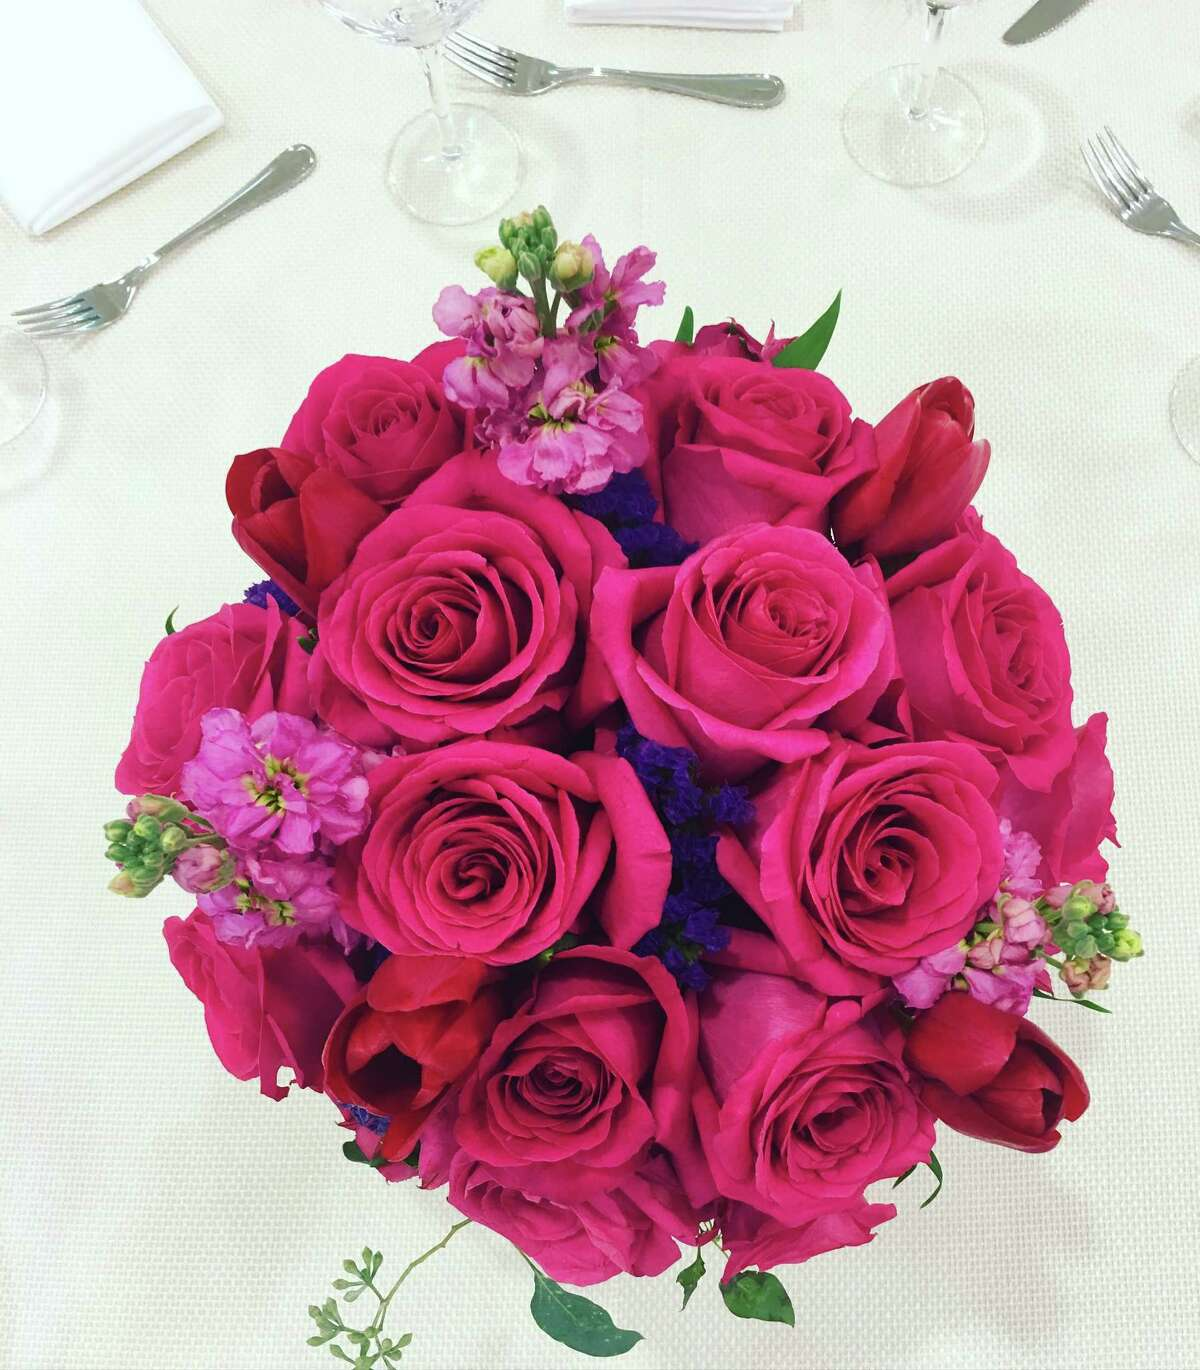 Roses on a spring luncheon table